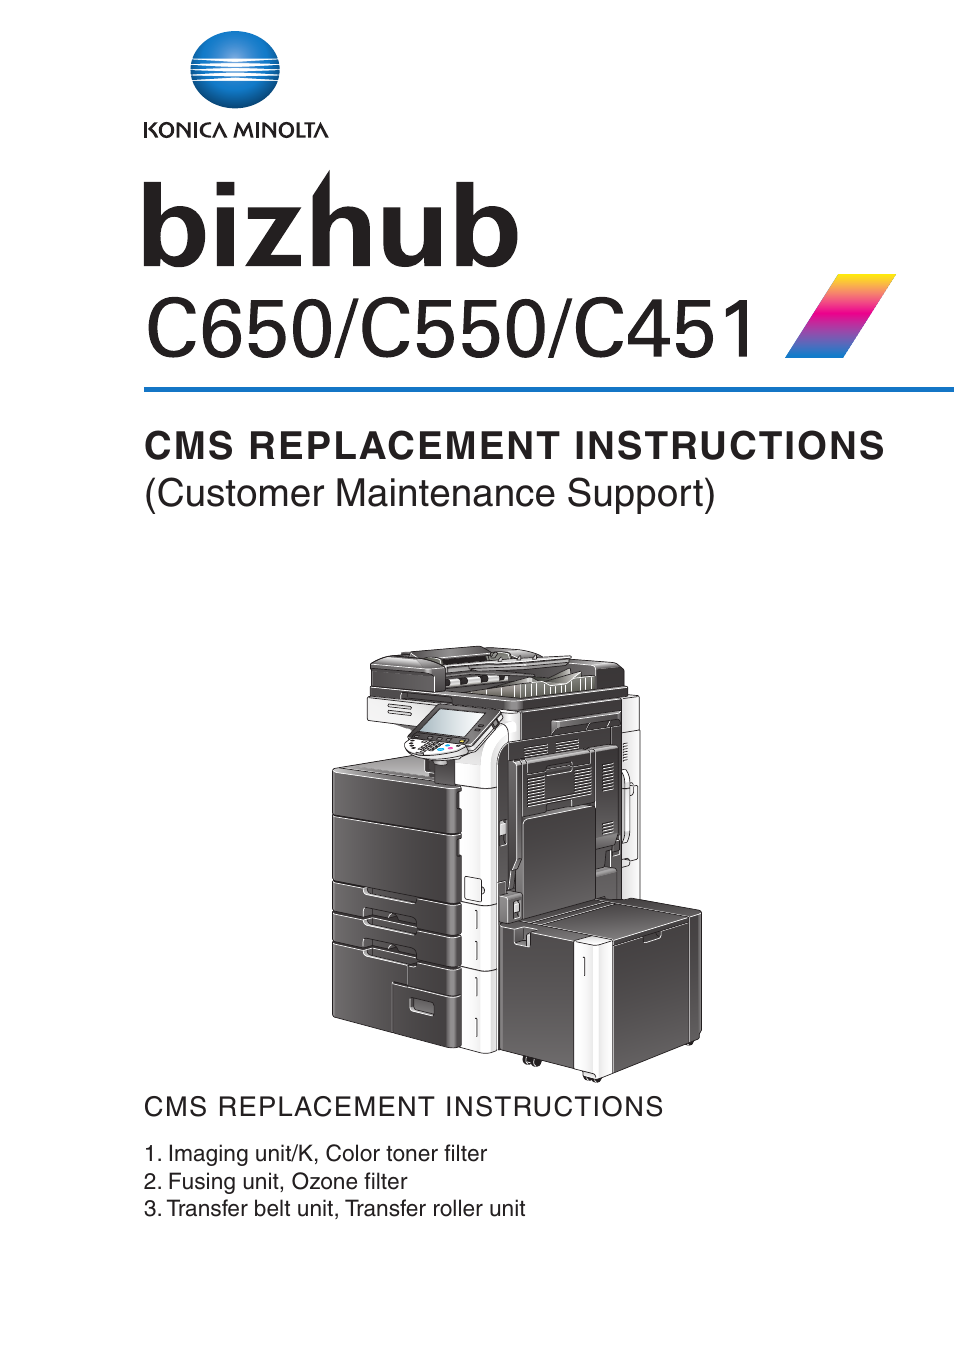 Konica Minolta bizhub C650 User Manual | 37 pages | Also for: bizhub C451, bizhub  C550